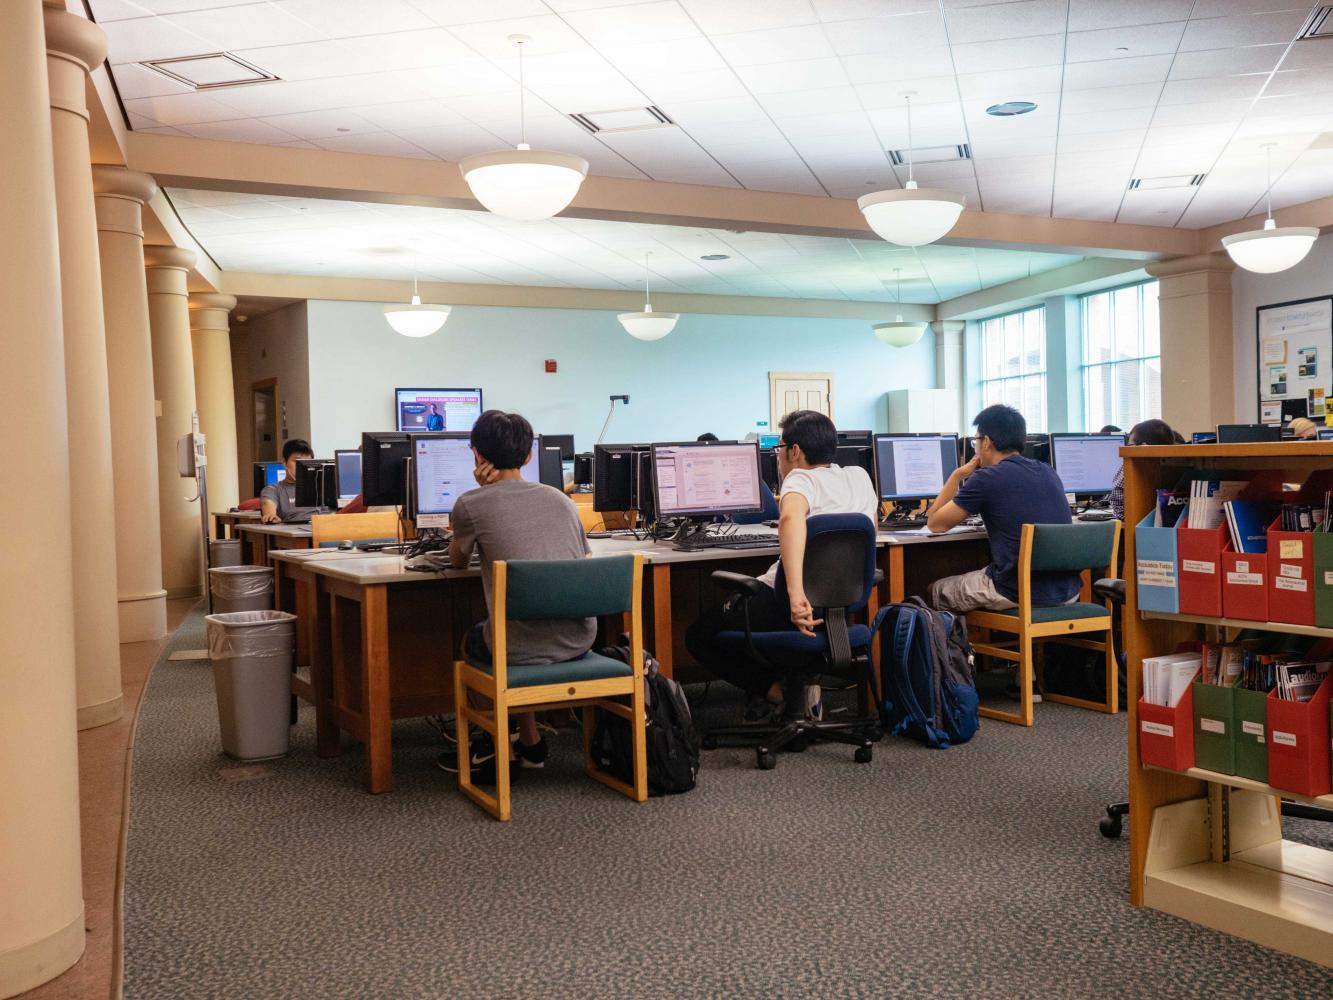 Students study in anticipation for their final exams at Grainger library. Several libraries and other campus locations have expanded their hours and added services, such as therapy dogs, to assist students.